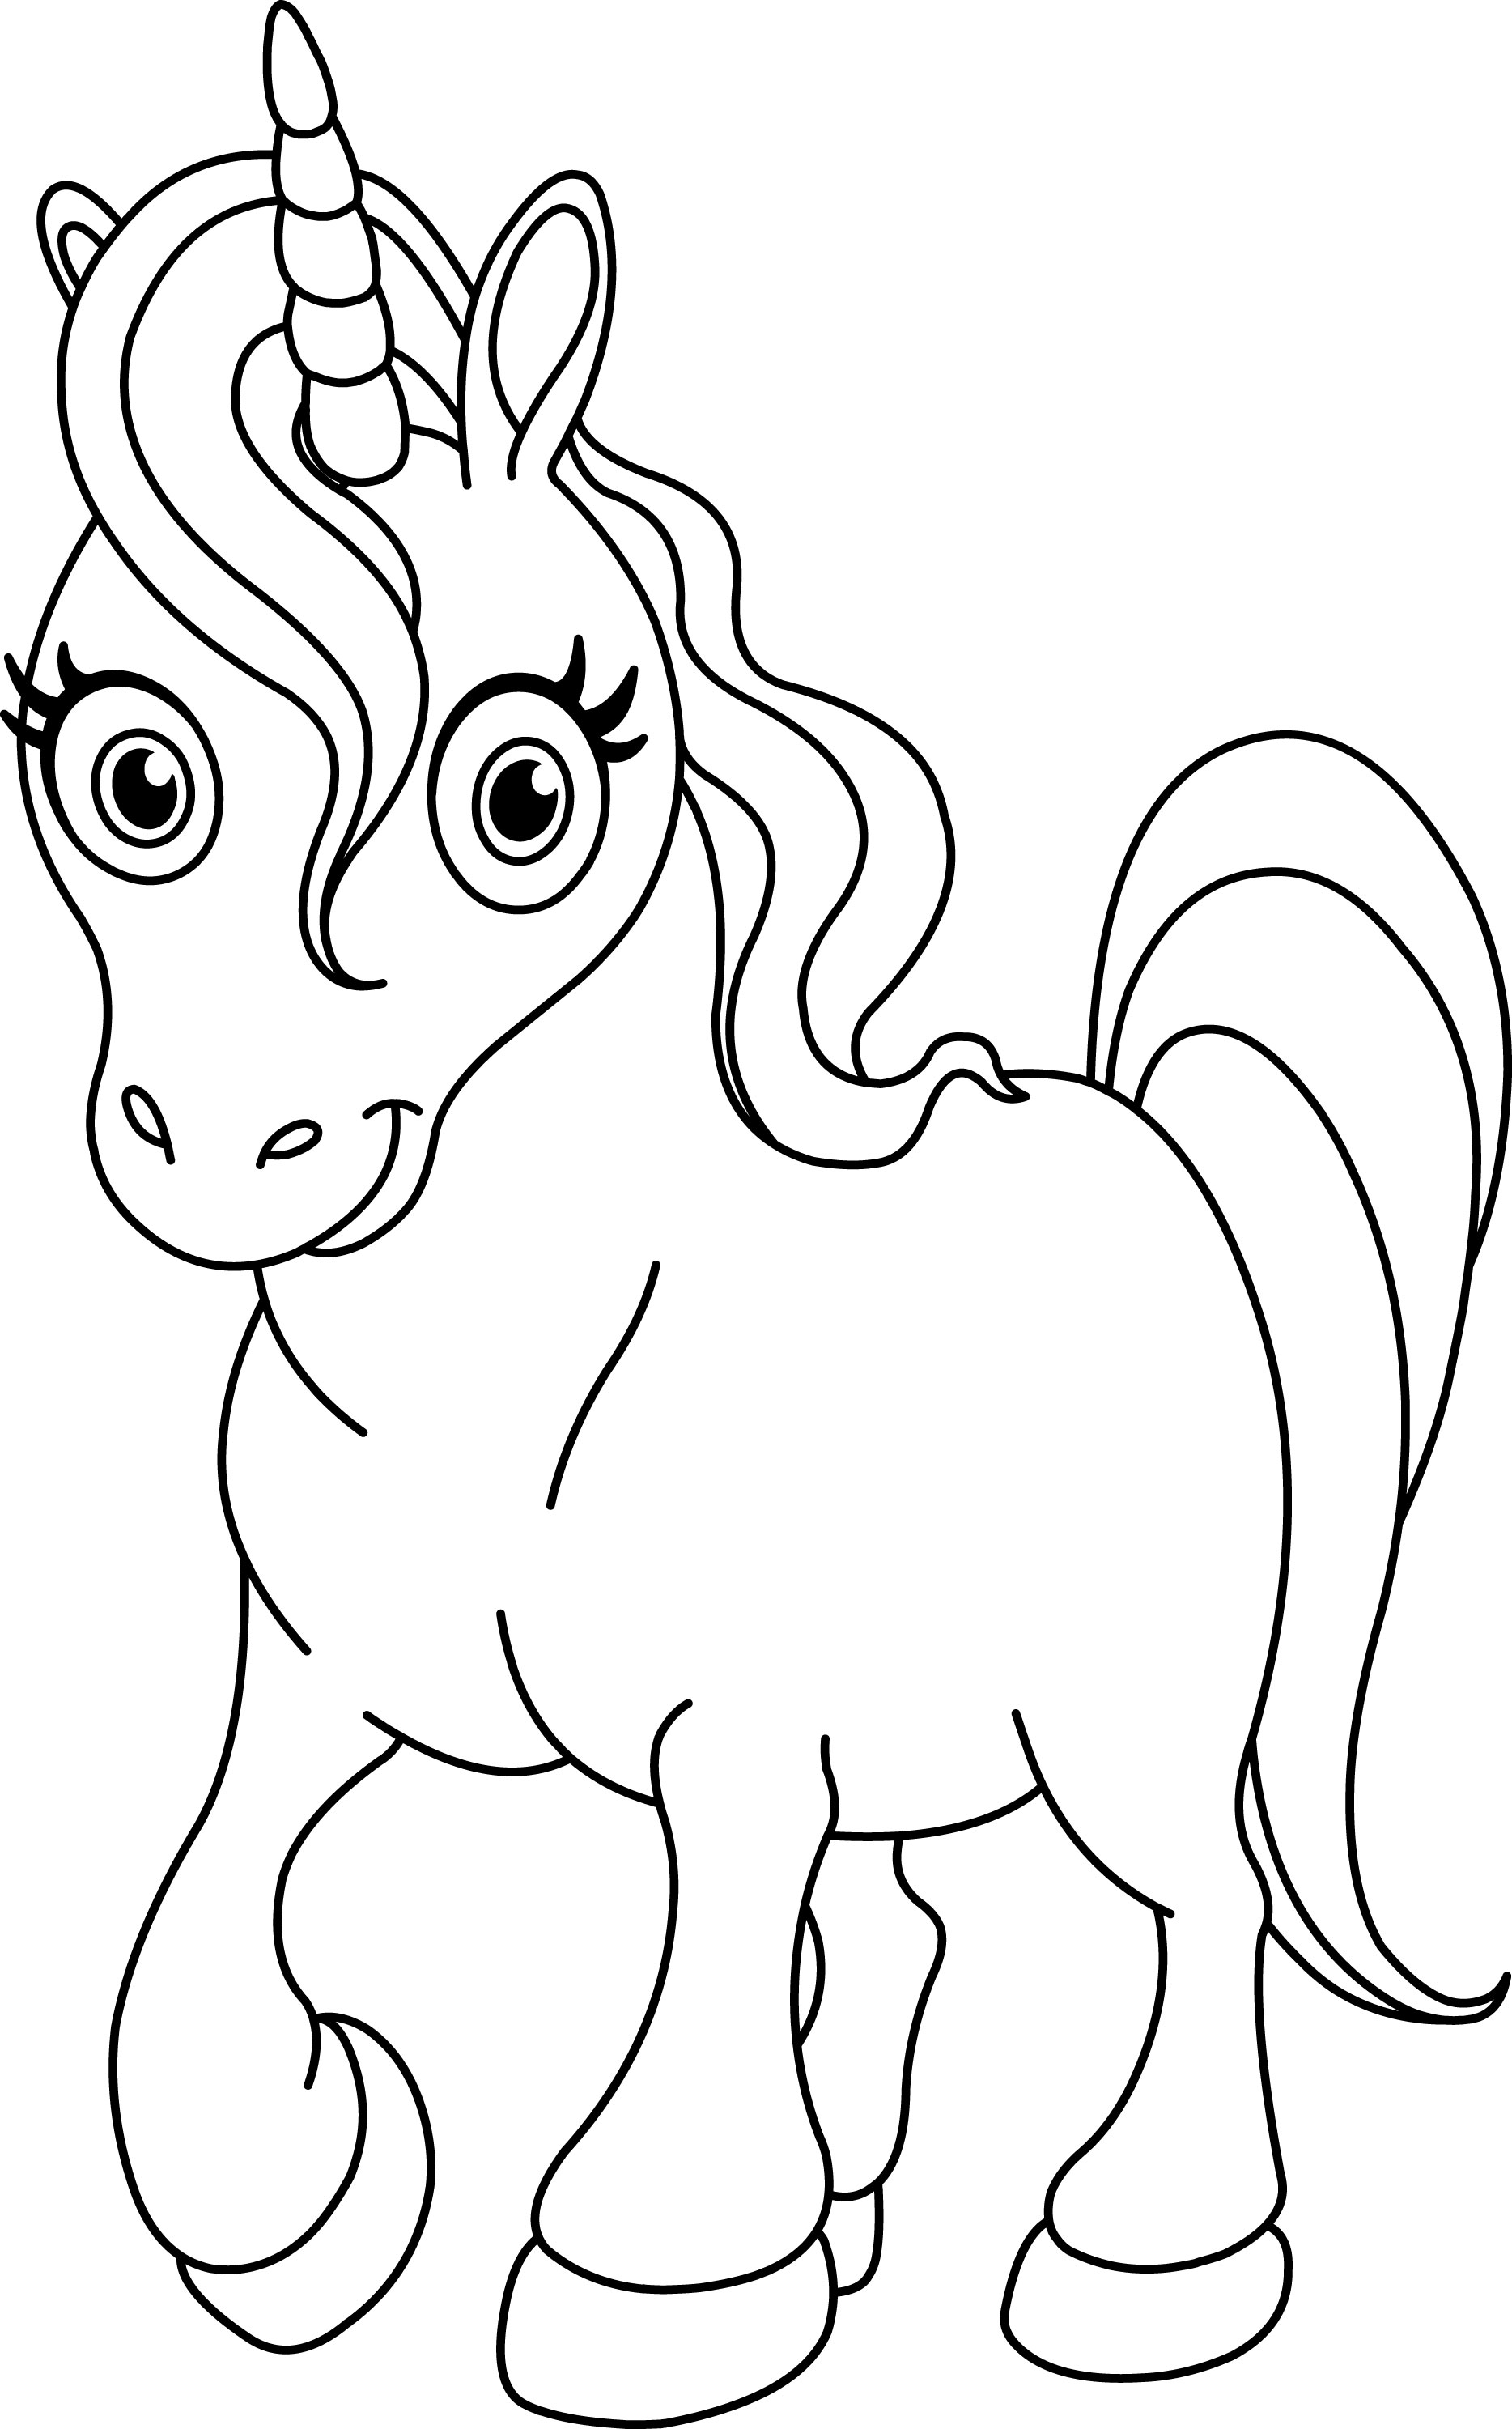 coloring pages of unicorns downloadable unicorn colouring page michael o39mara books pages unicorns of coloring